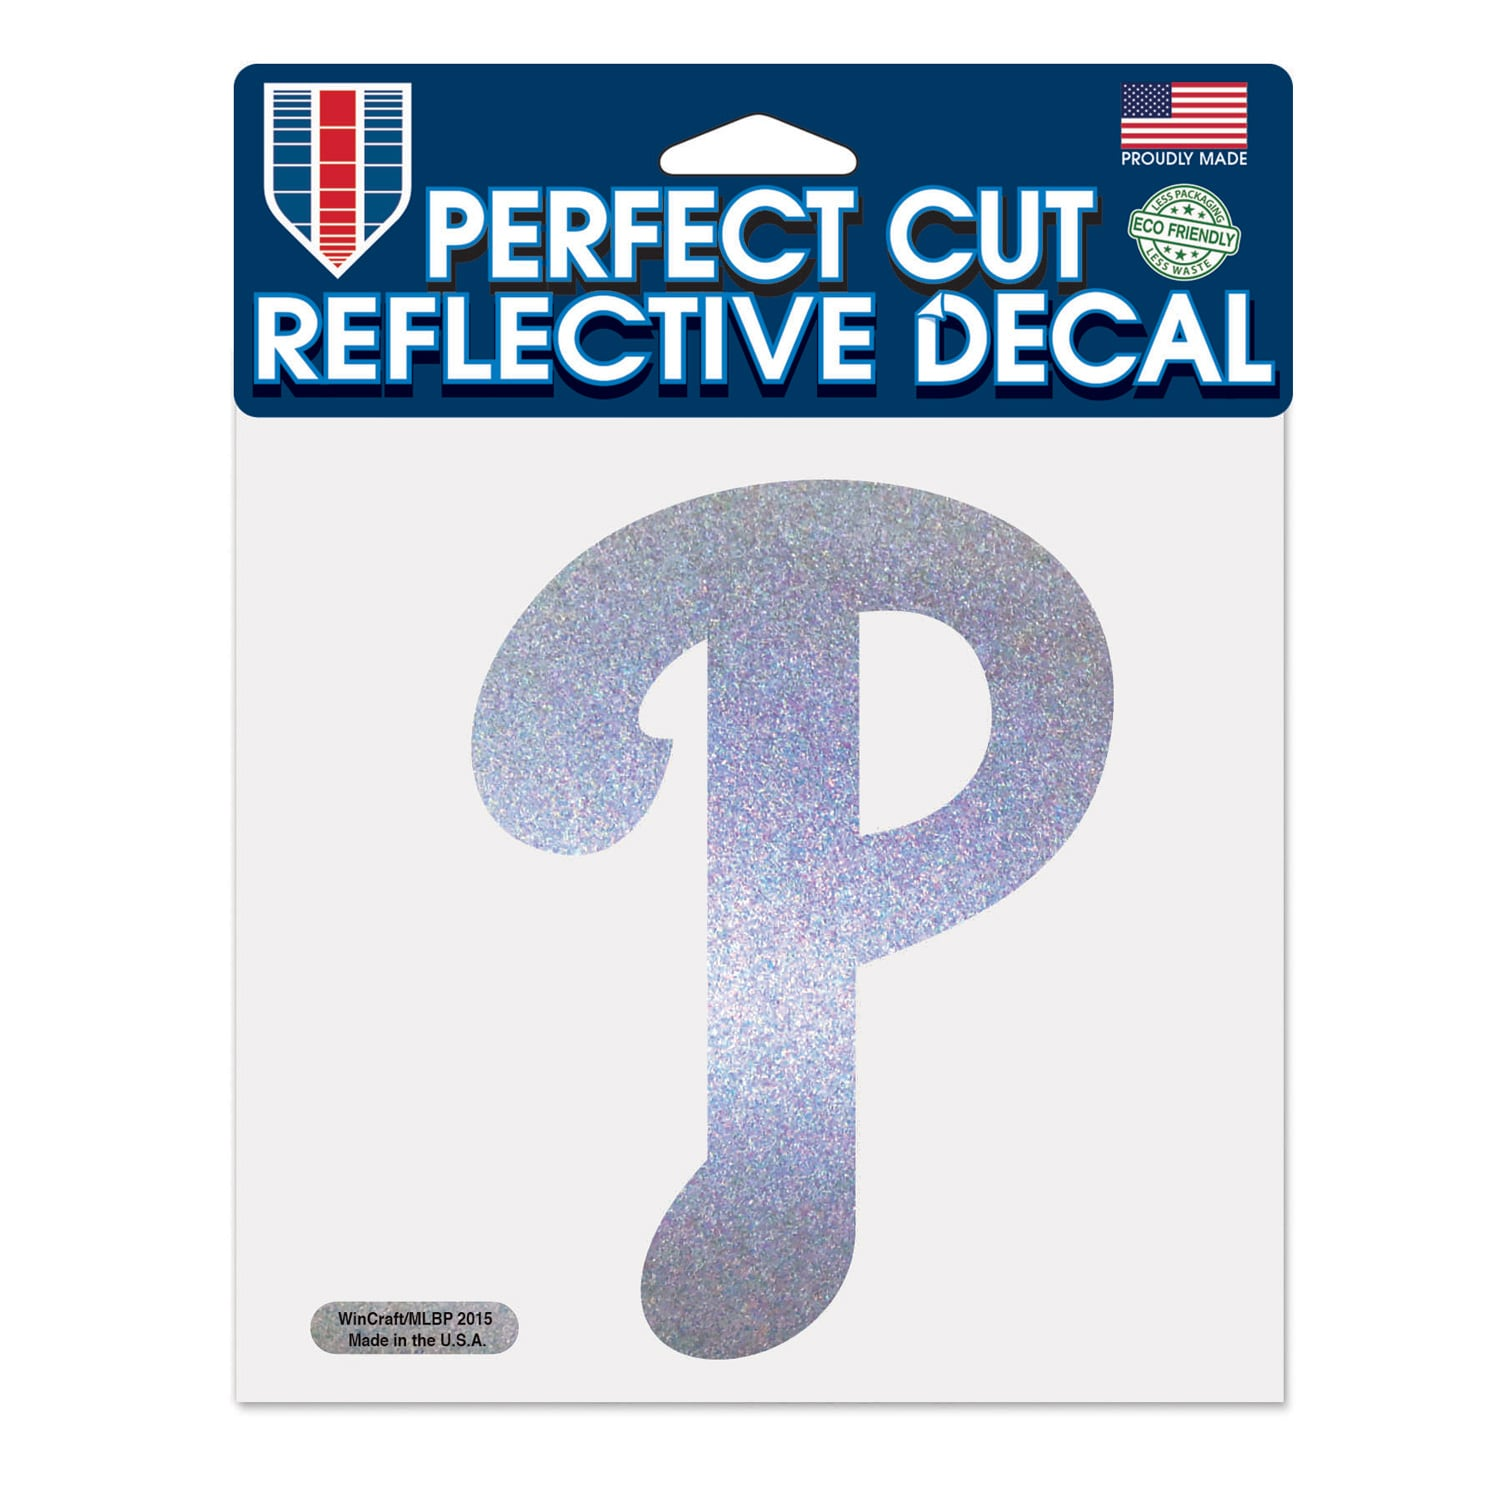 "Philadelphia Phillies WinCraft 6"" x 6"" Reflective Perfect Cut Decal"